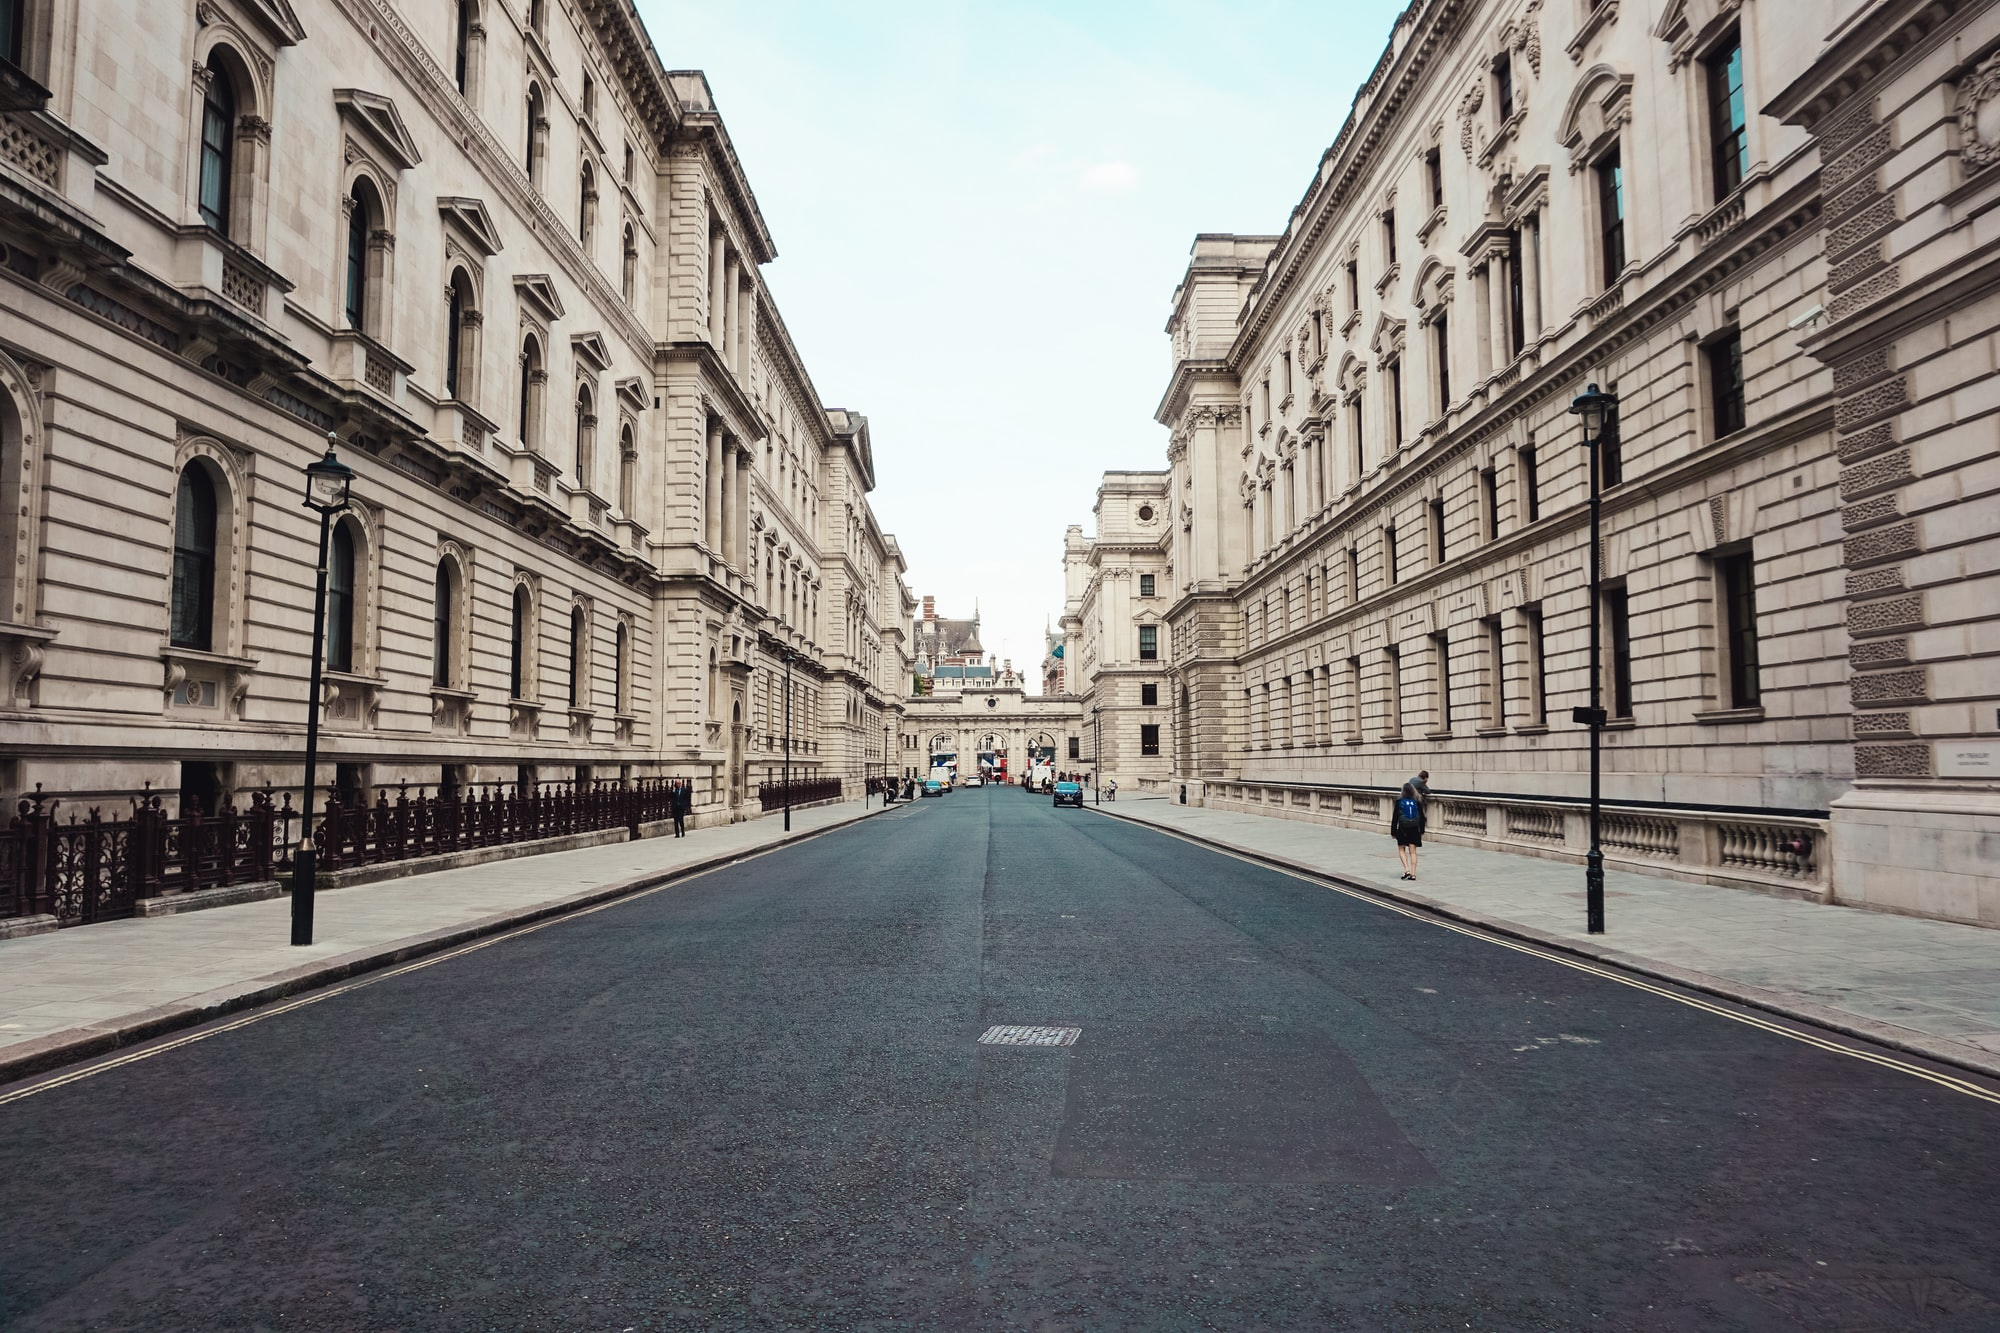 Walking through the King Charles St in the center of London.